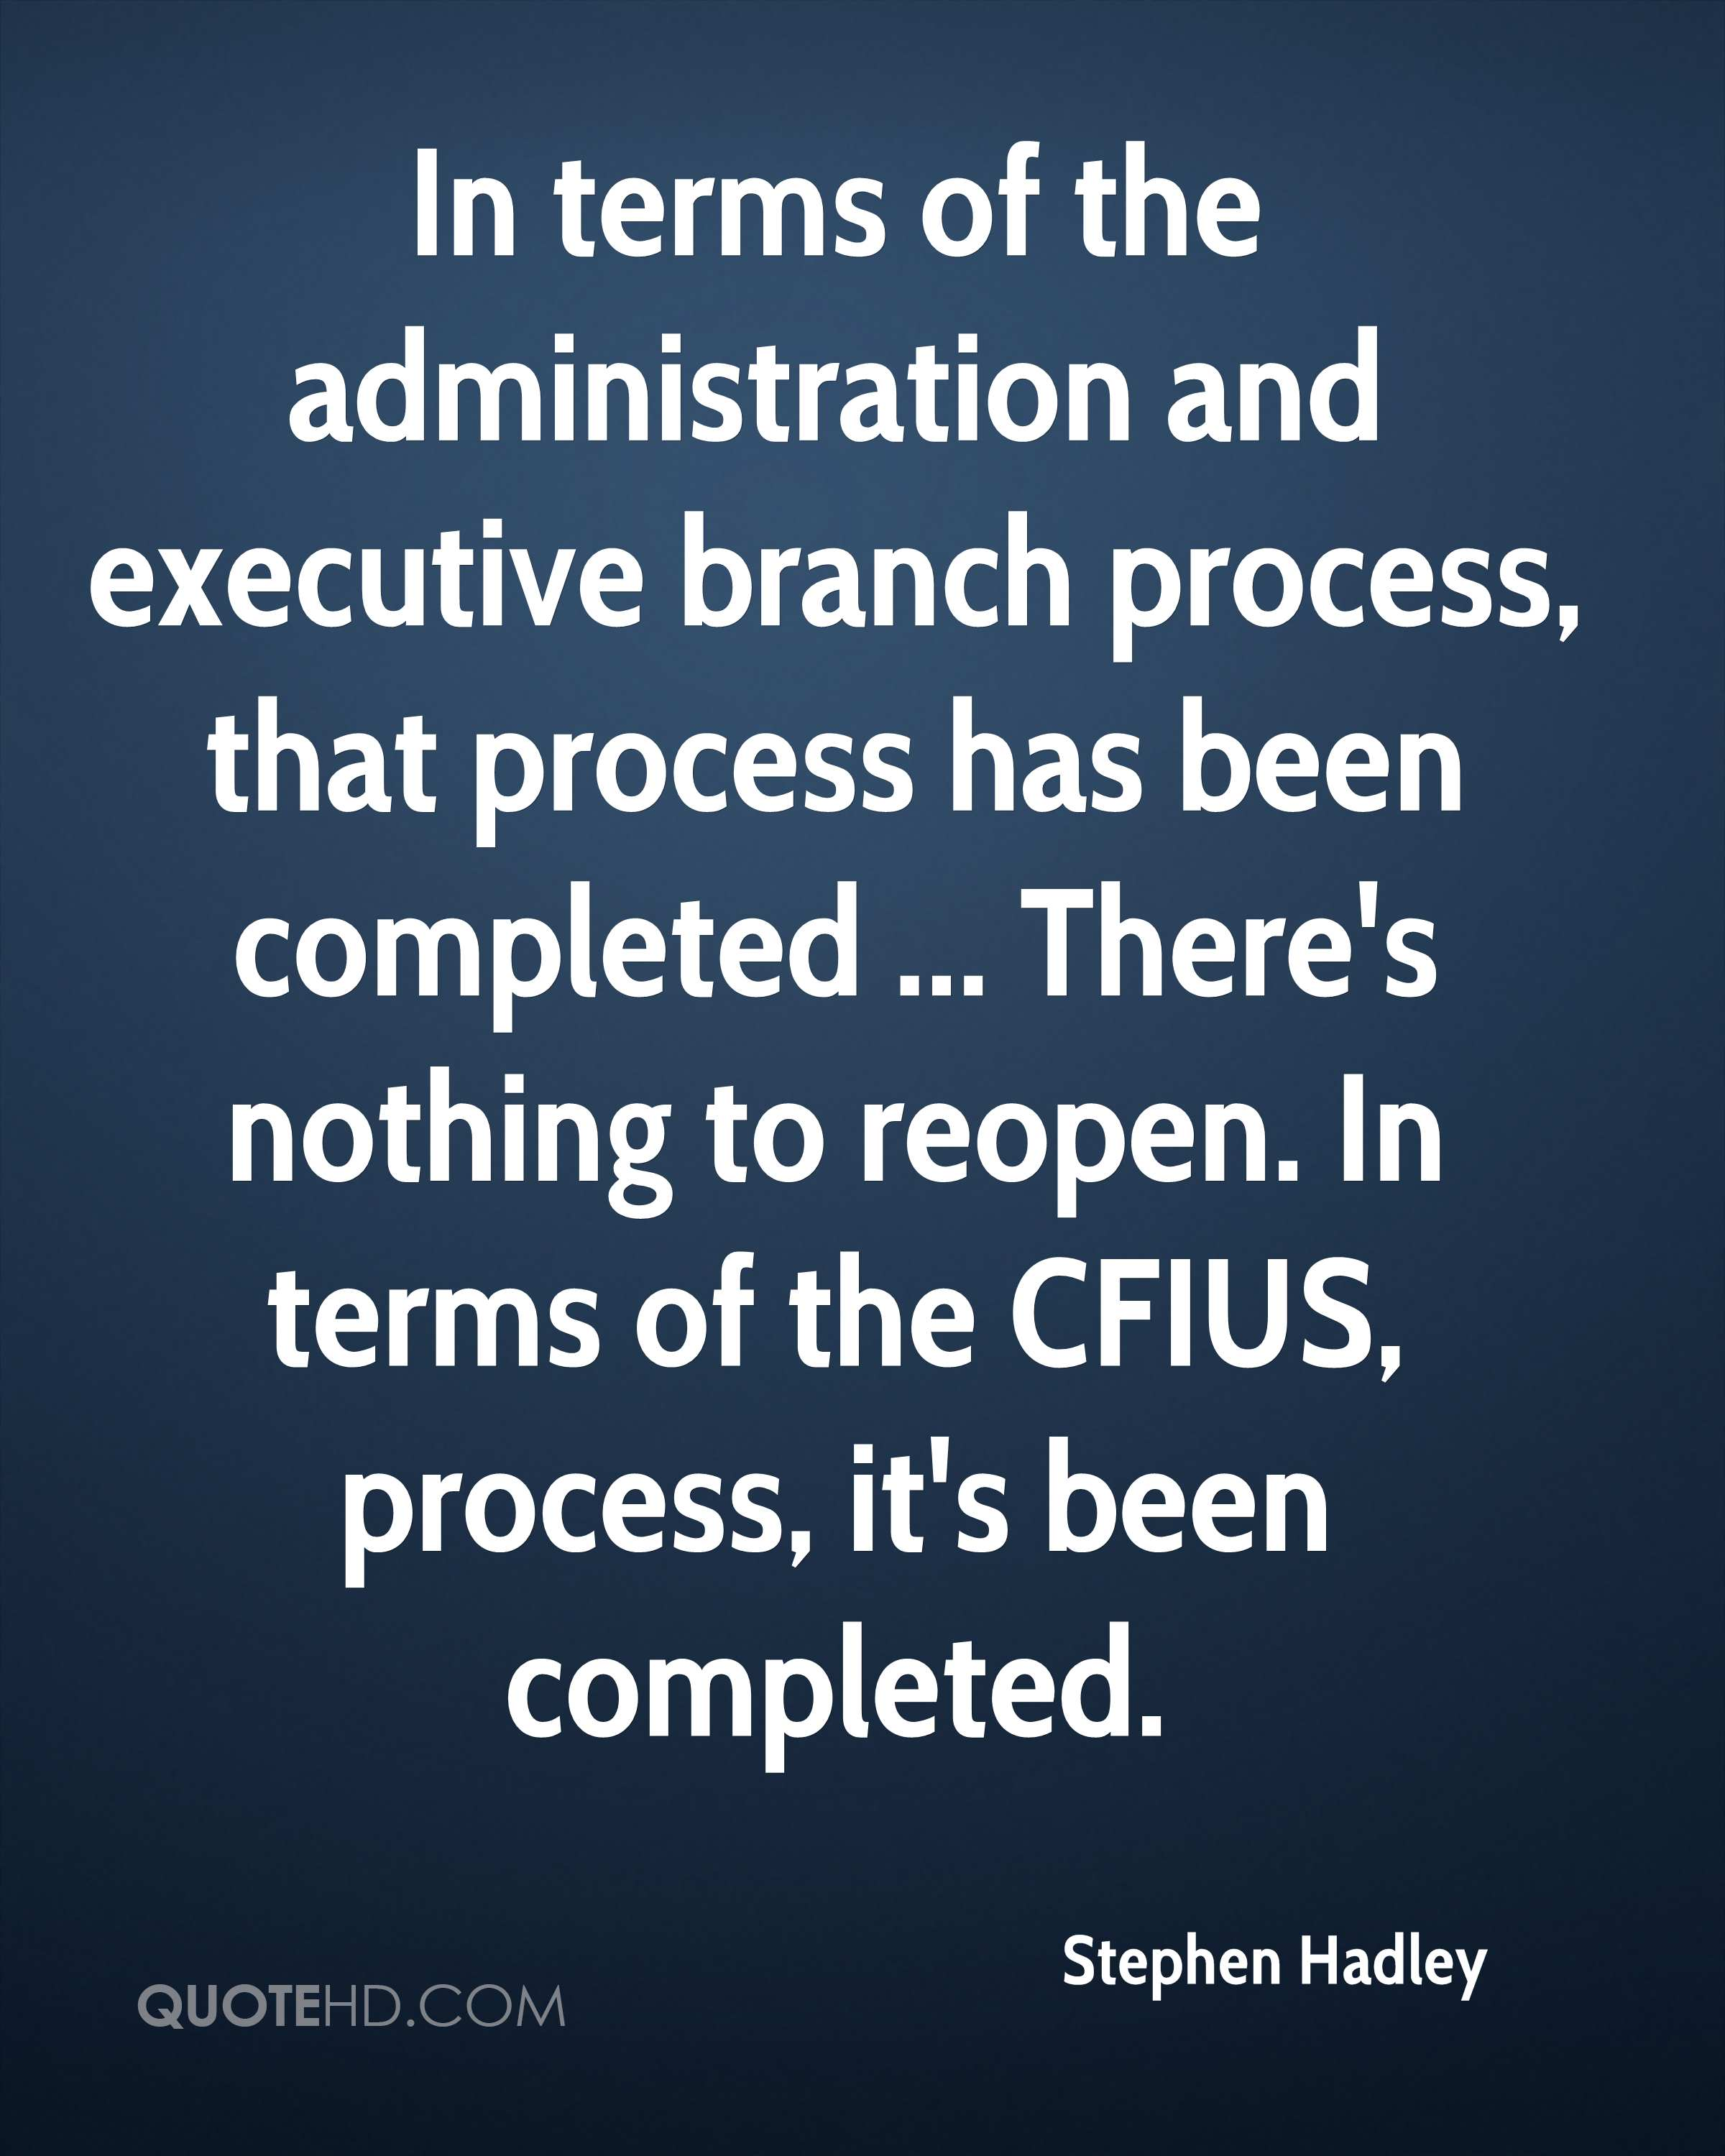 In terms of the administration and executive branch process, that process has been completed ... There's nothing to reopen. In terms of the CFIUS, process, it's been completed.